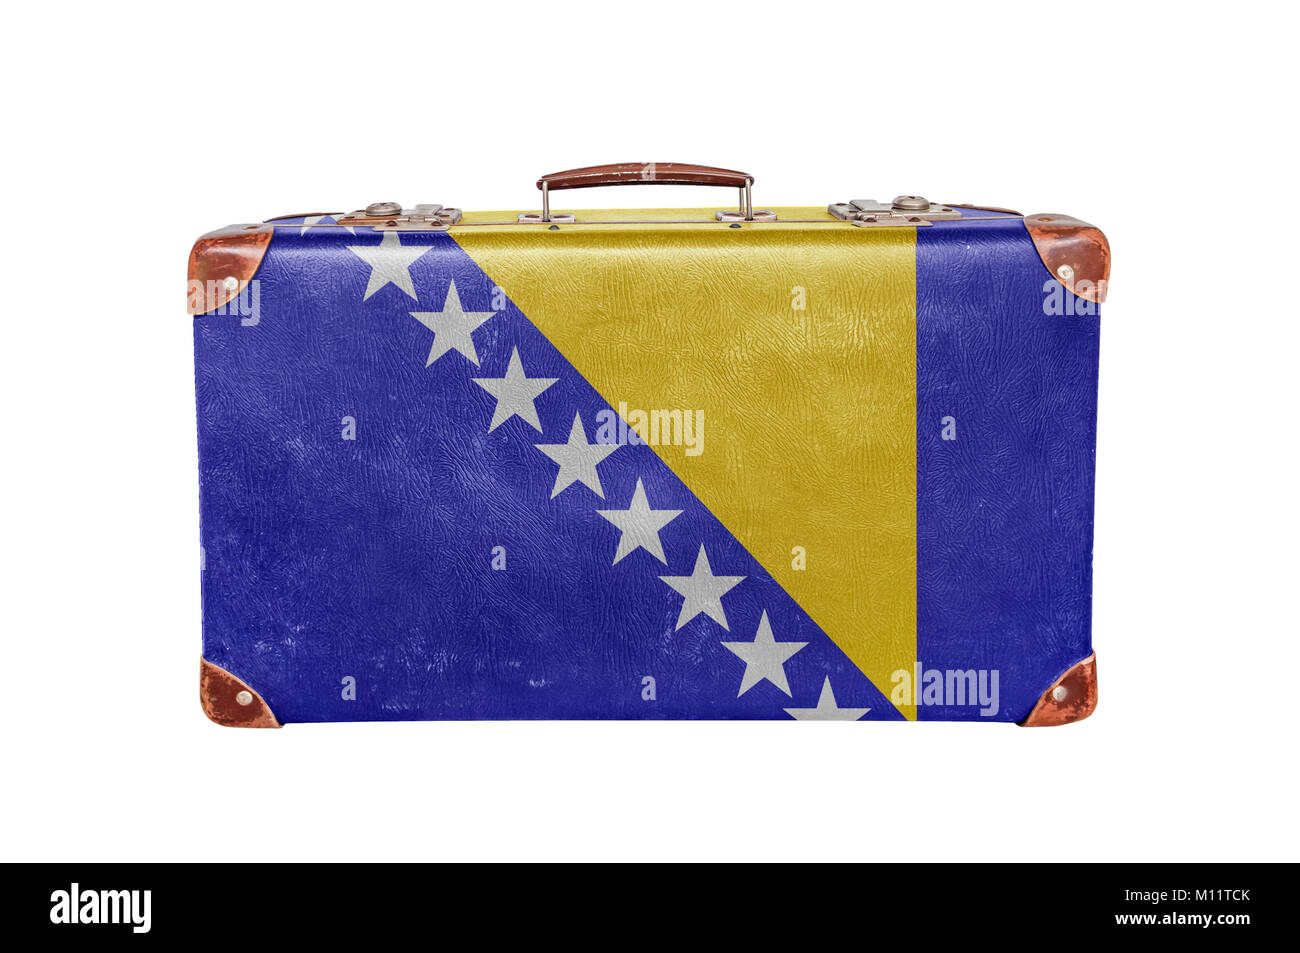 Vintage suitcase with Bosnia and Herzegovina flag - Stock Image